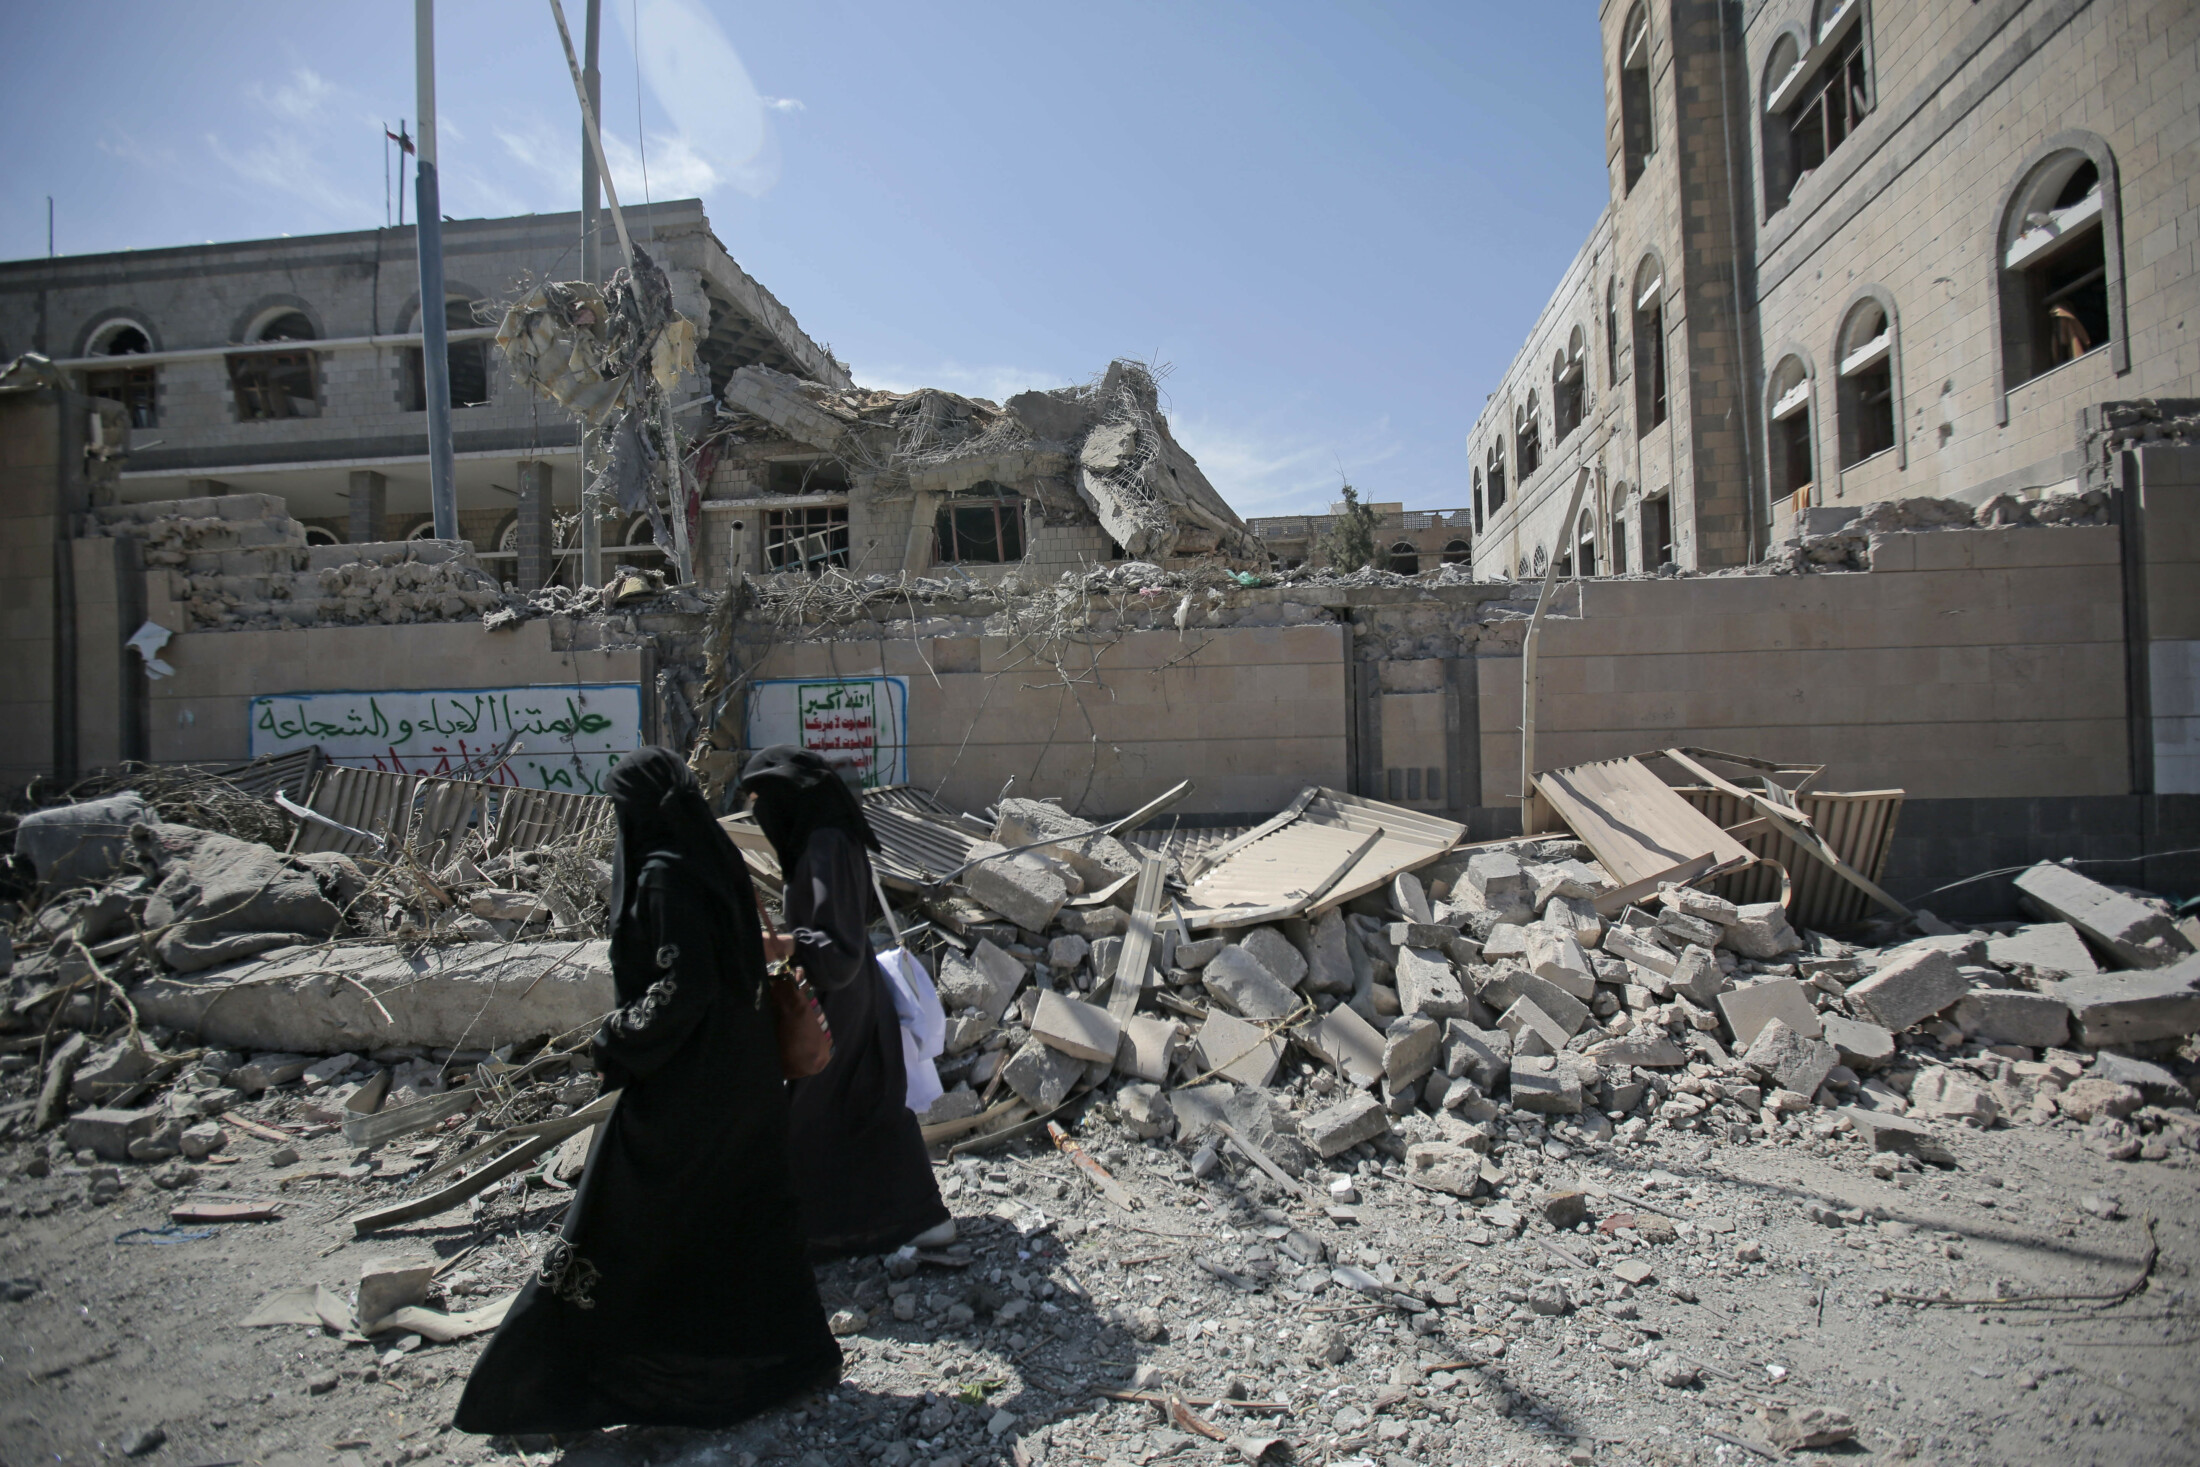 Yemenis walk past rubble after deadly airstrikes in and near the presidential compound, in Sanaa in 2018. Yemen's civil war started in 2014 when the Houthis overran the capital, Sanaa, and much of the country's north.